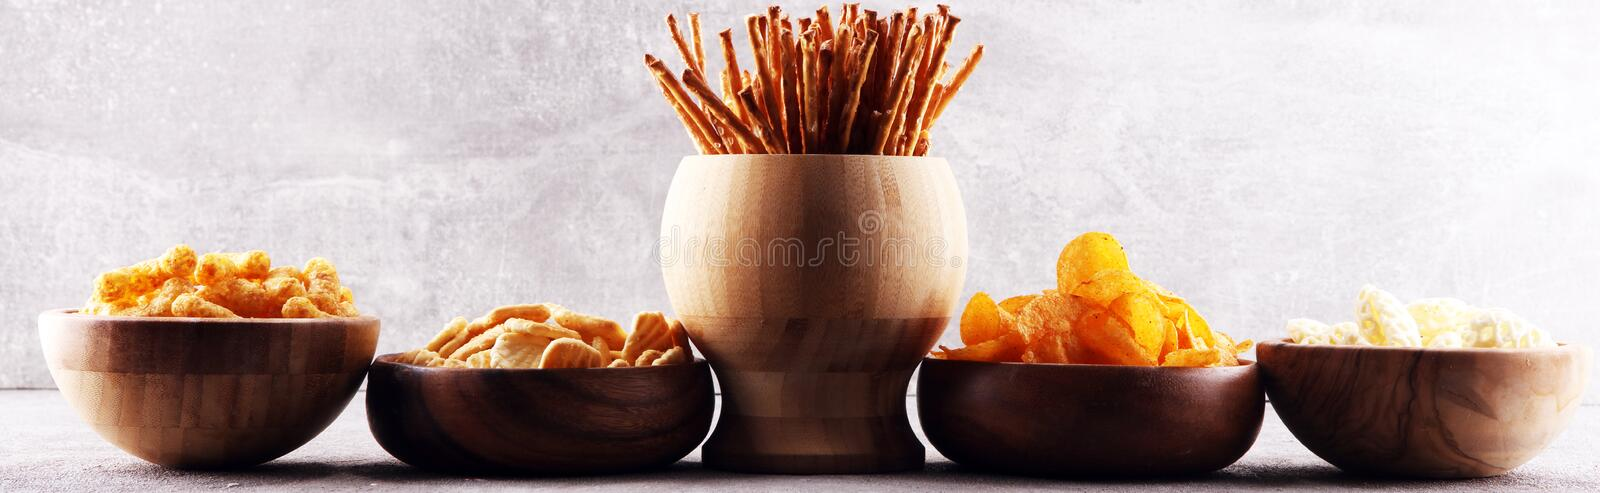 Salty snacks. Pretzels, chips, crackers in wooden bowls stock image